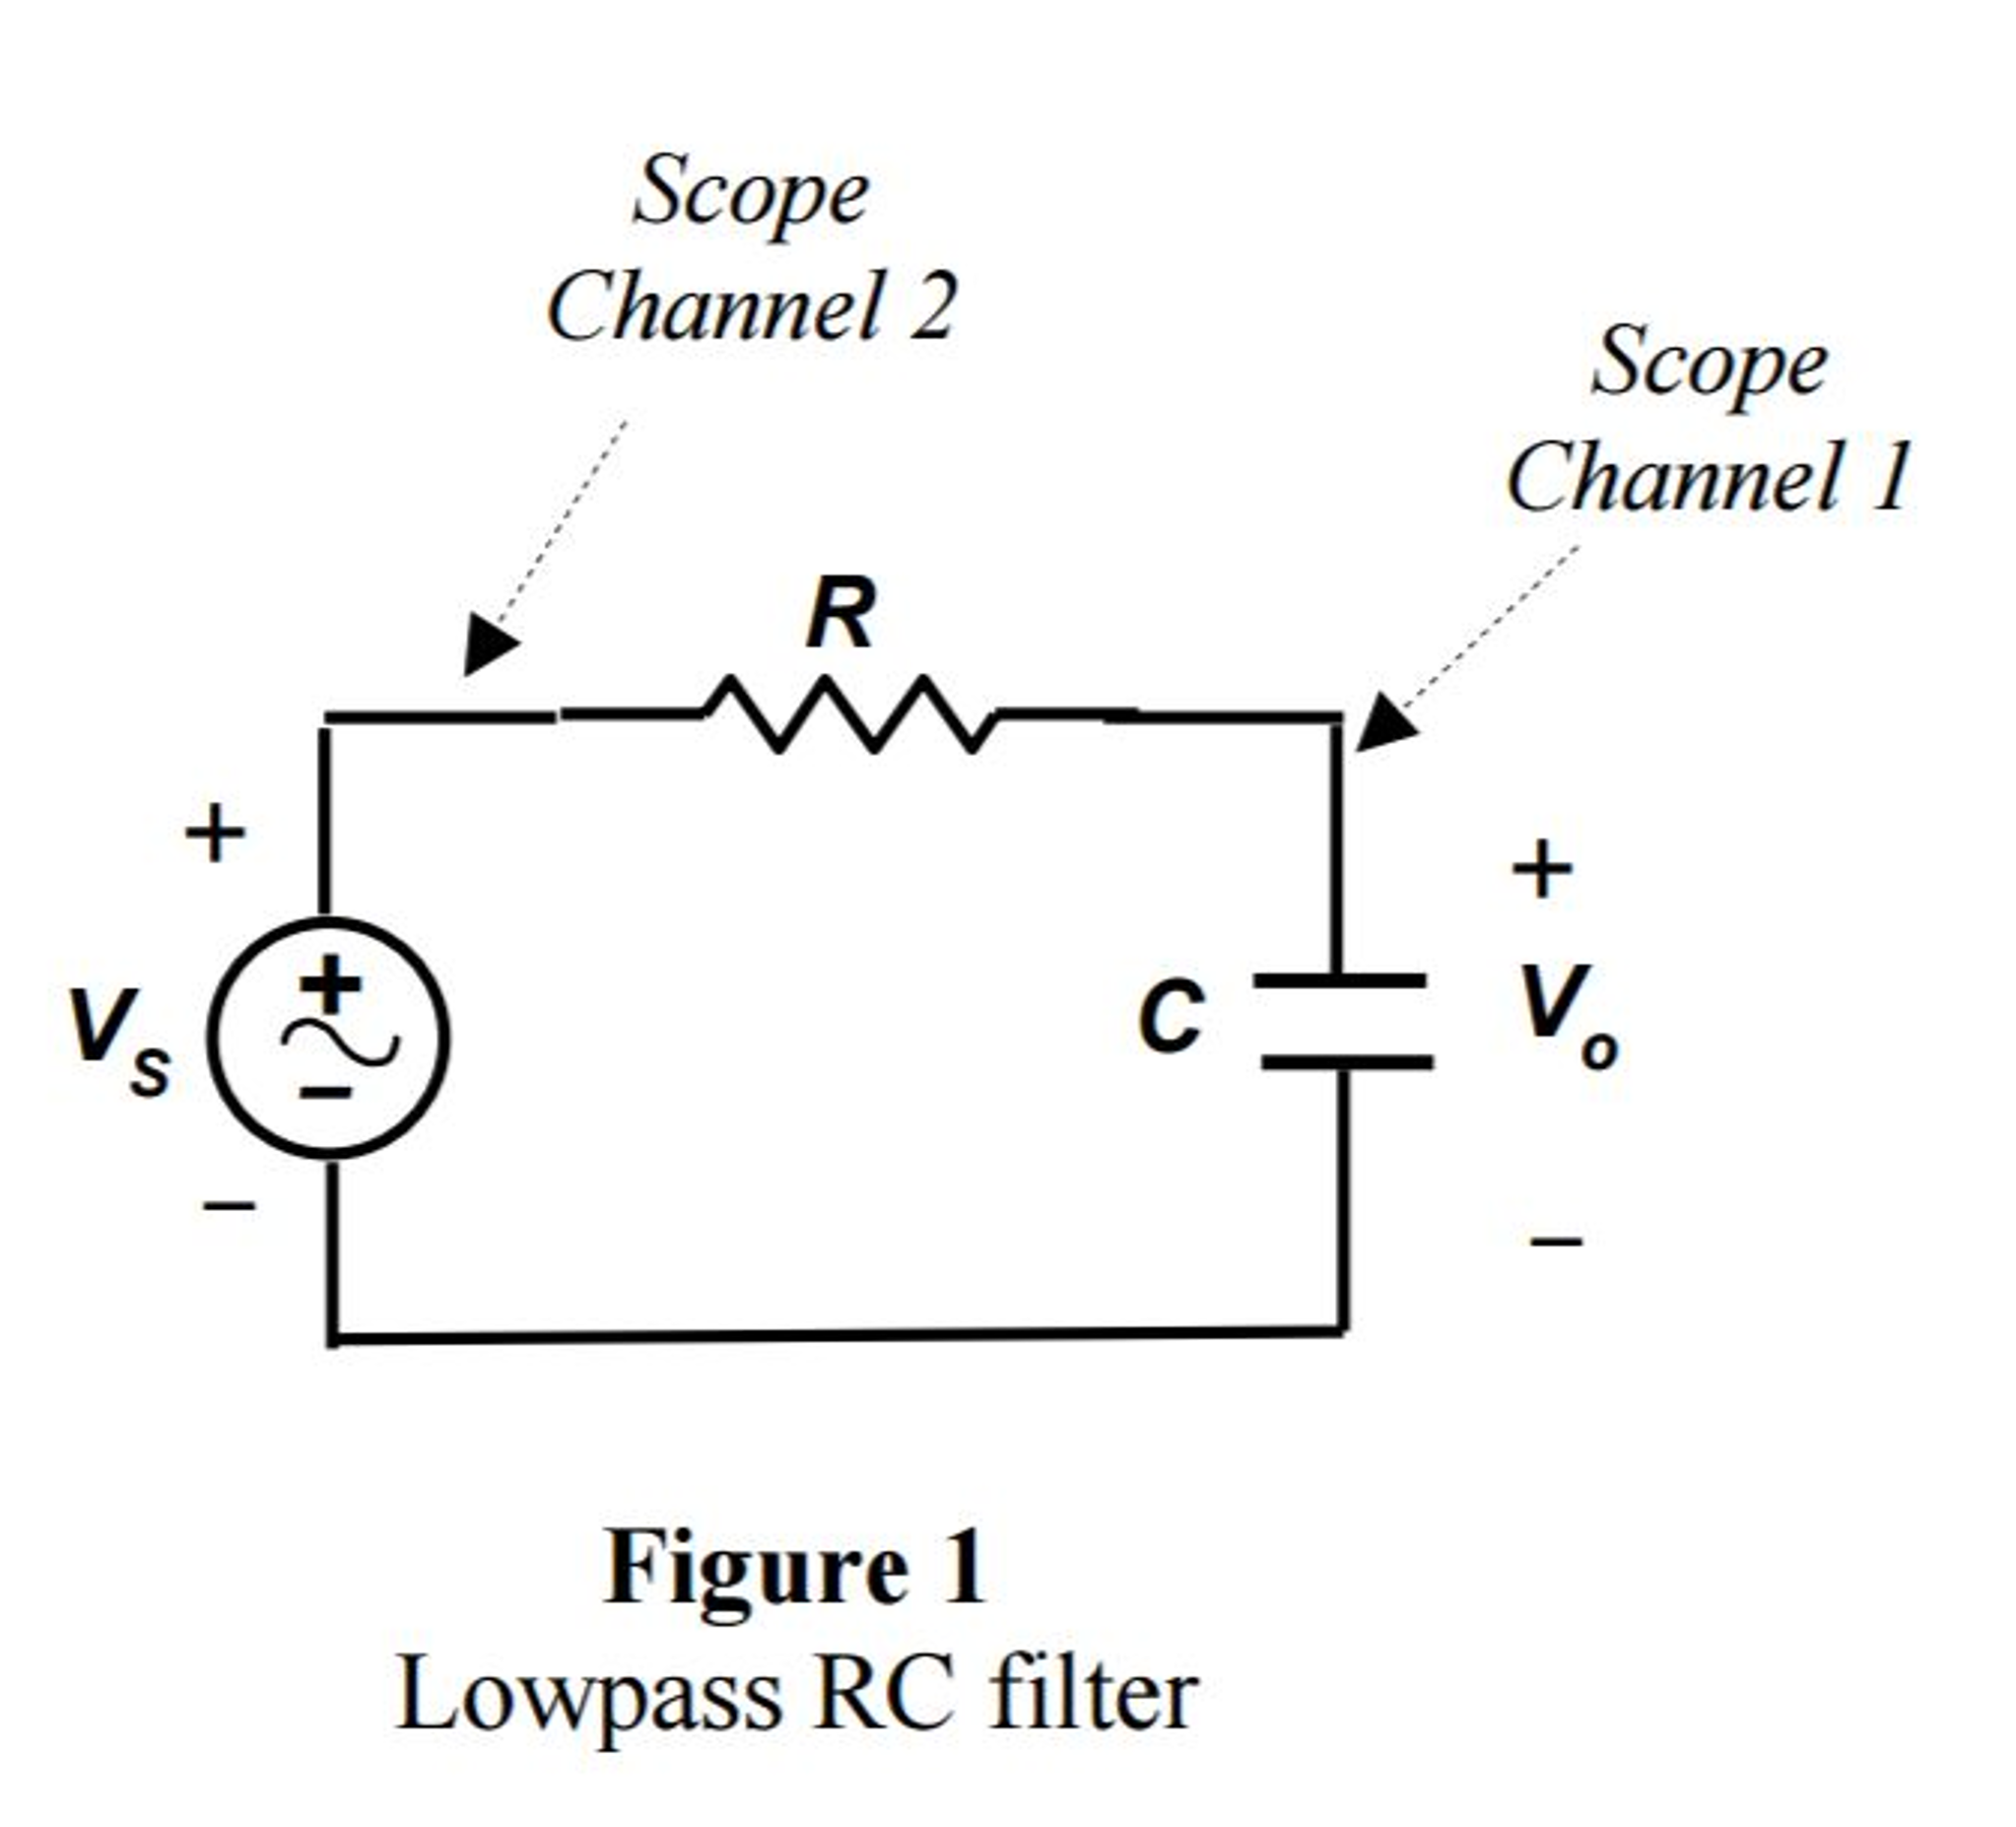 solved  1  for the lowpass rc filter  calculate the phase